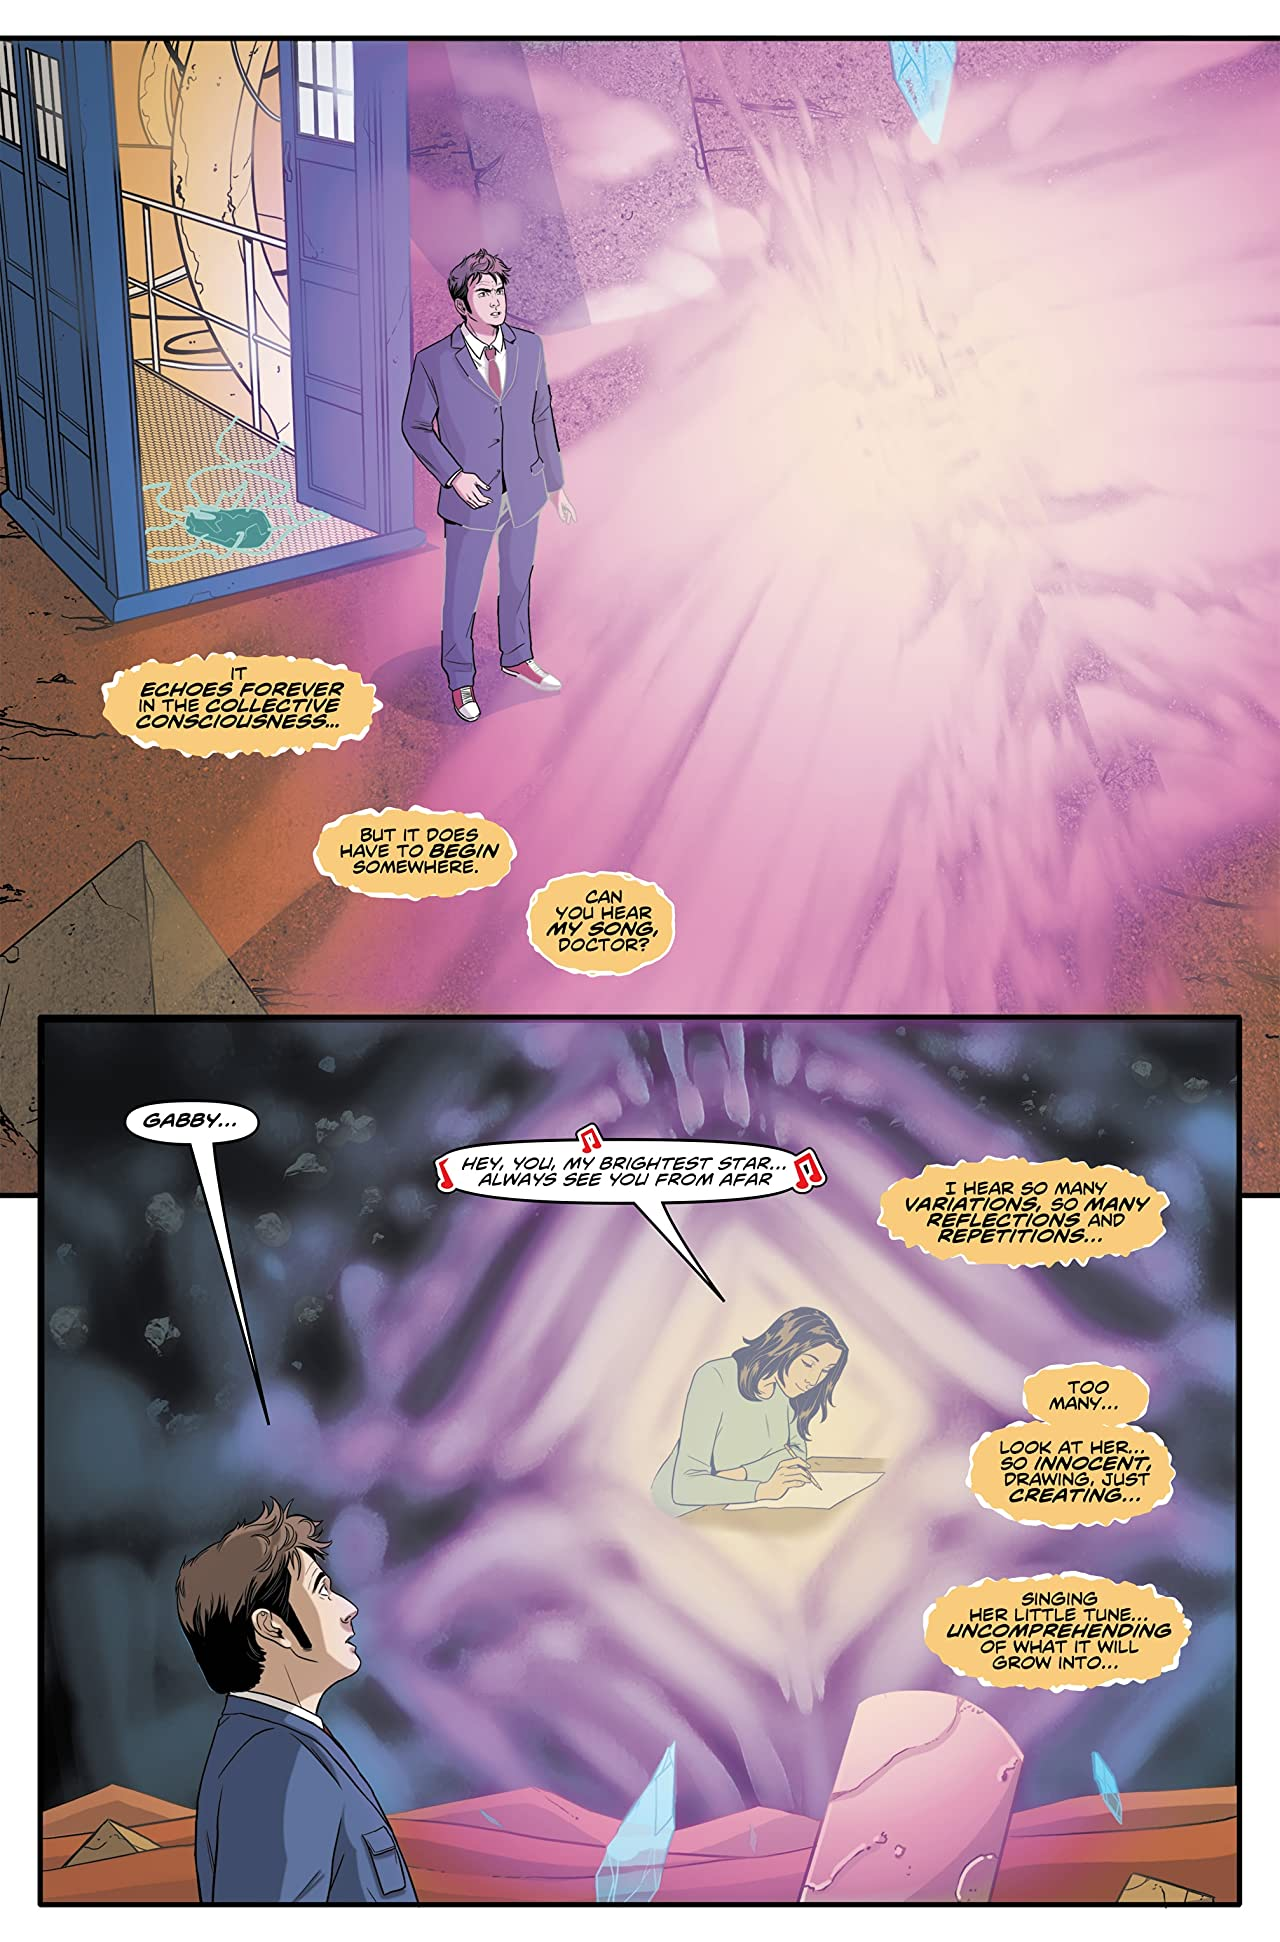 Doctor Who: The Tenth Doctor #3.10